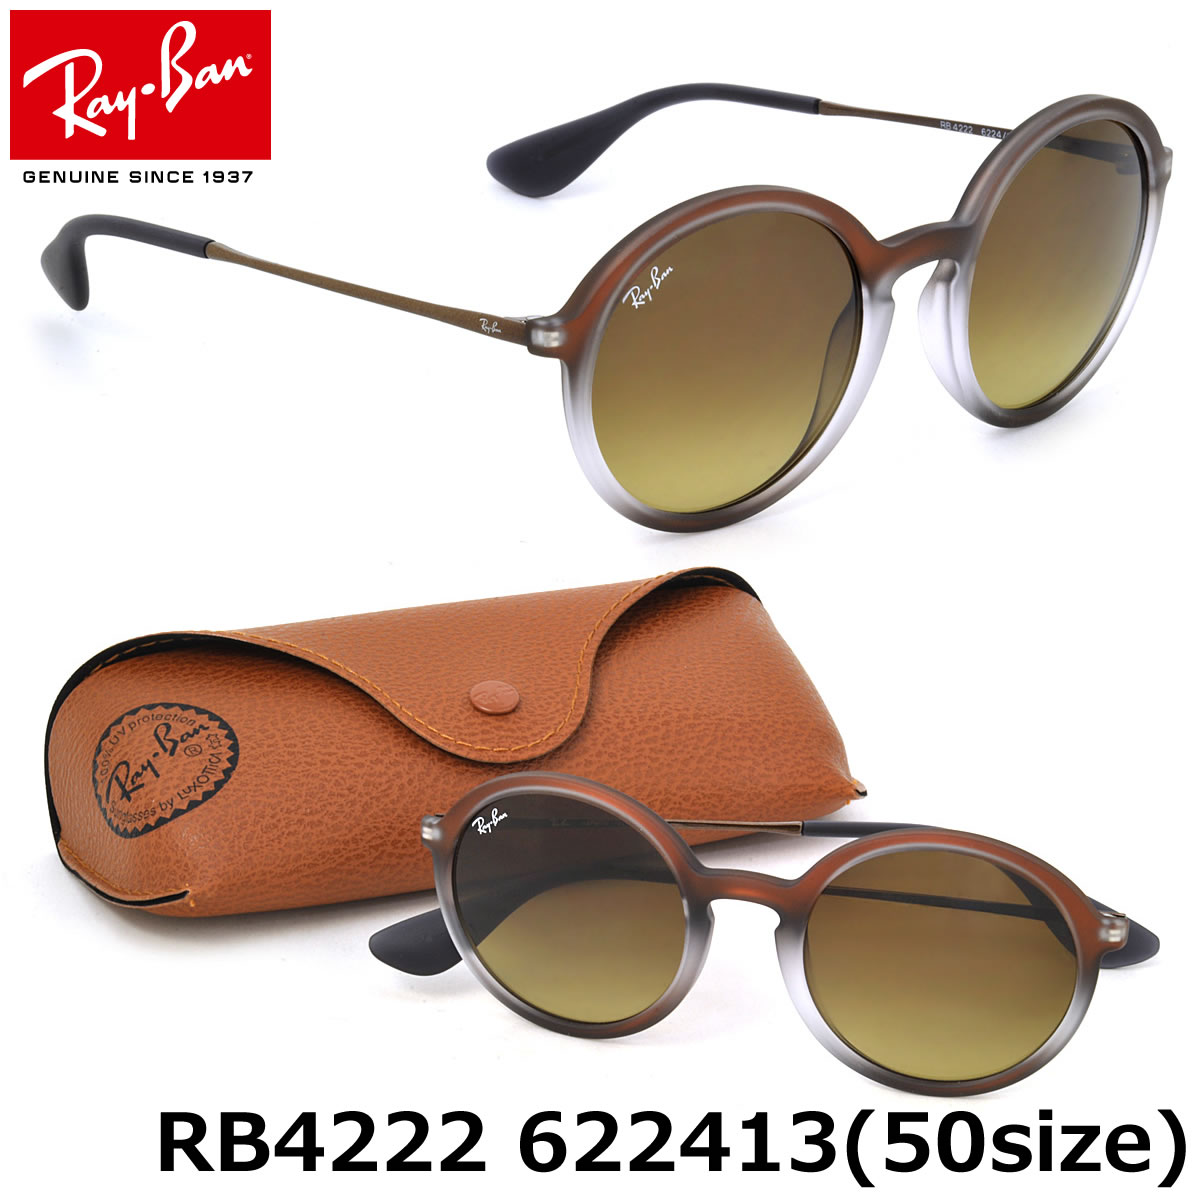 357c9124bfa Exquisite workmanship unique to numerous classical design has been rebuilt  in the shape of modern Ray-Ban.